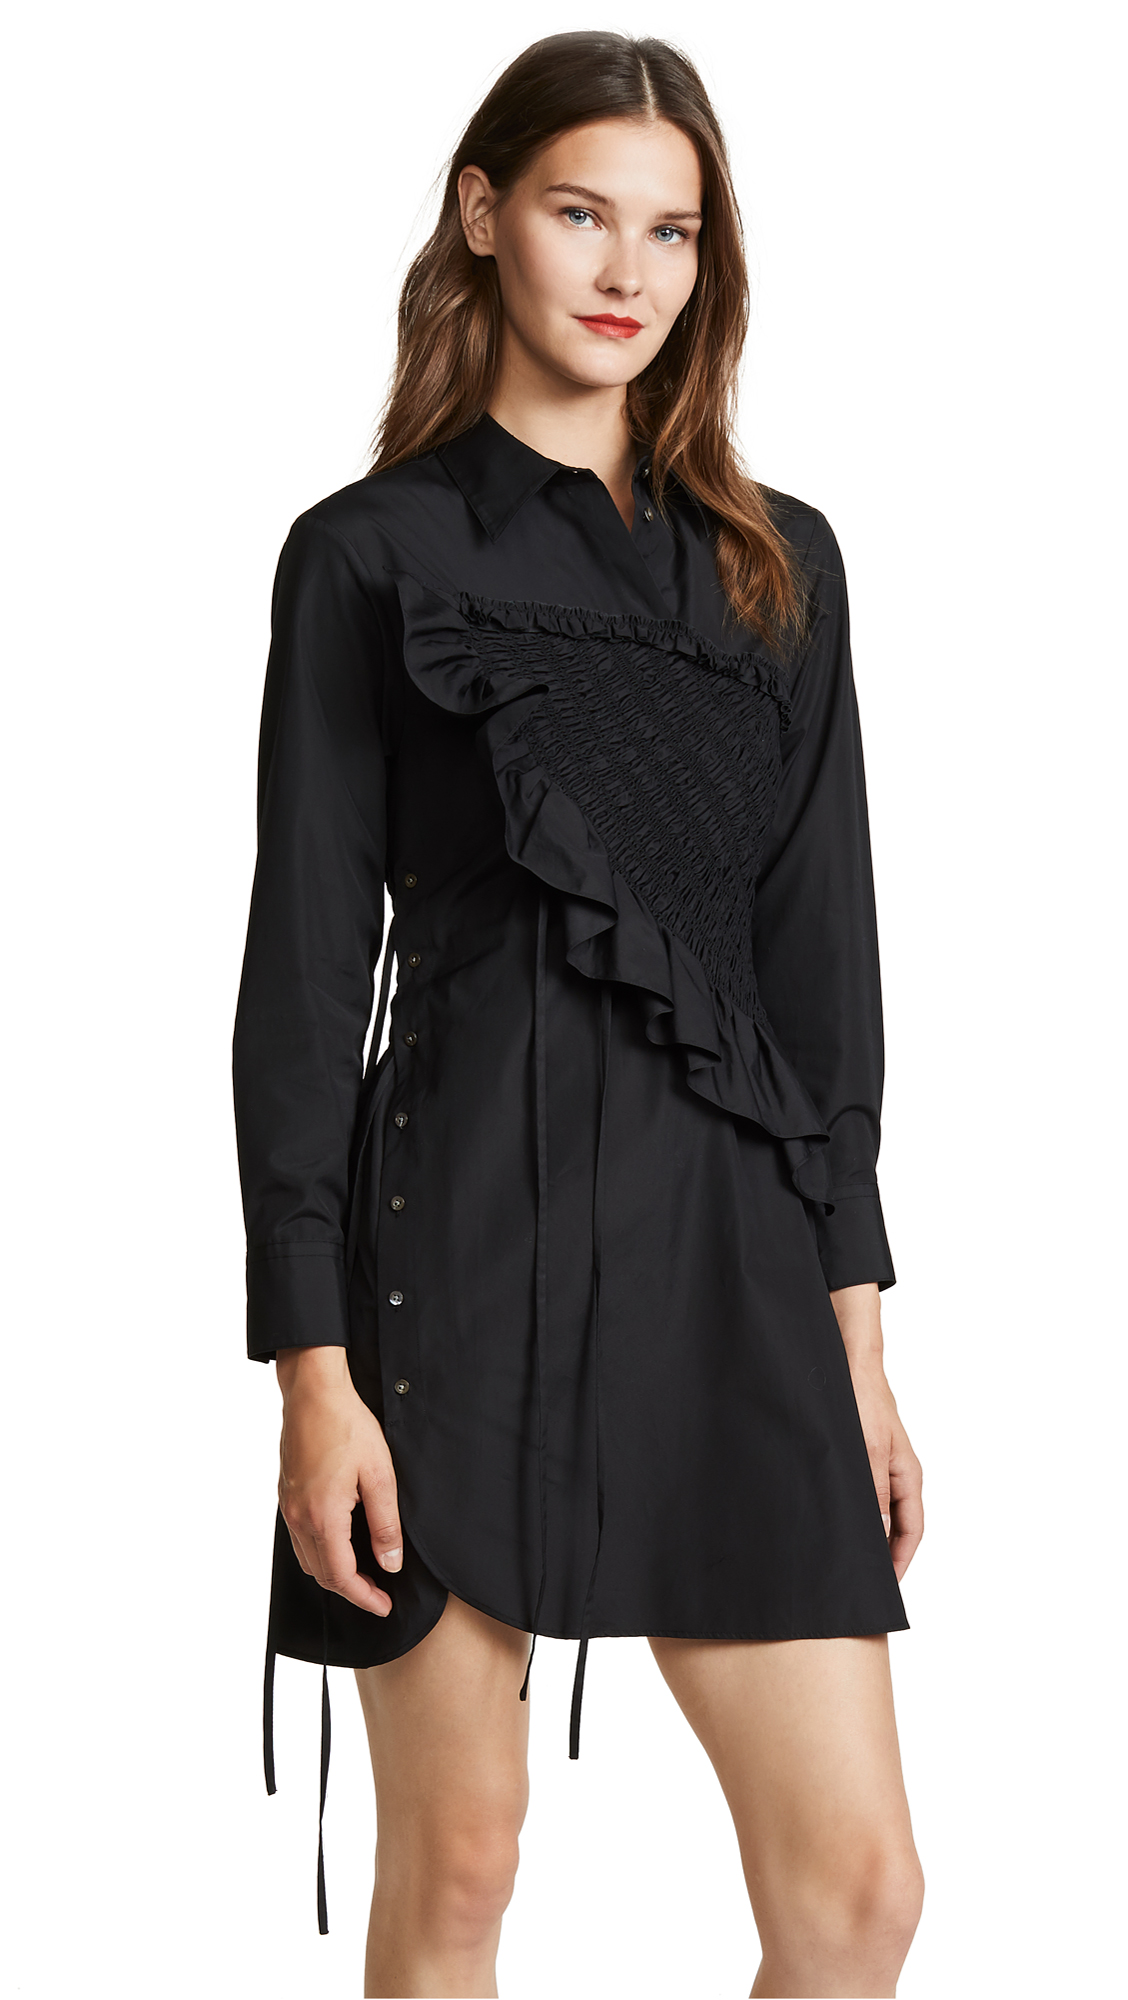 Buy 3.1 Phillip Lim Asymmetrical Shirtdress online beautiful 3.1 Phillip Lim Clothing, Dresses